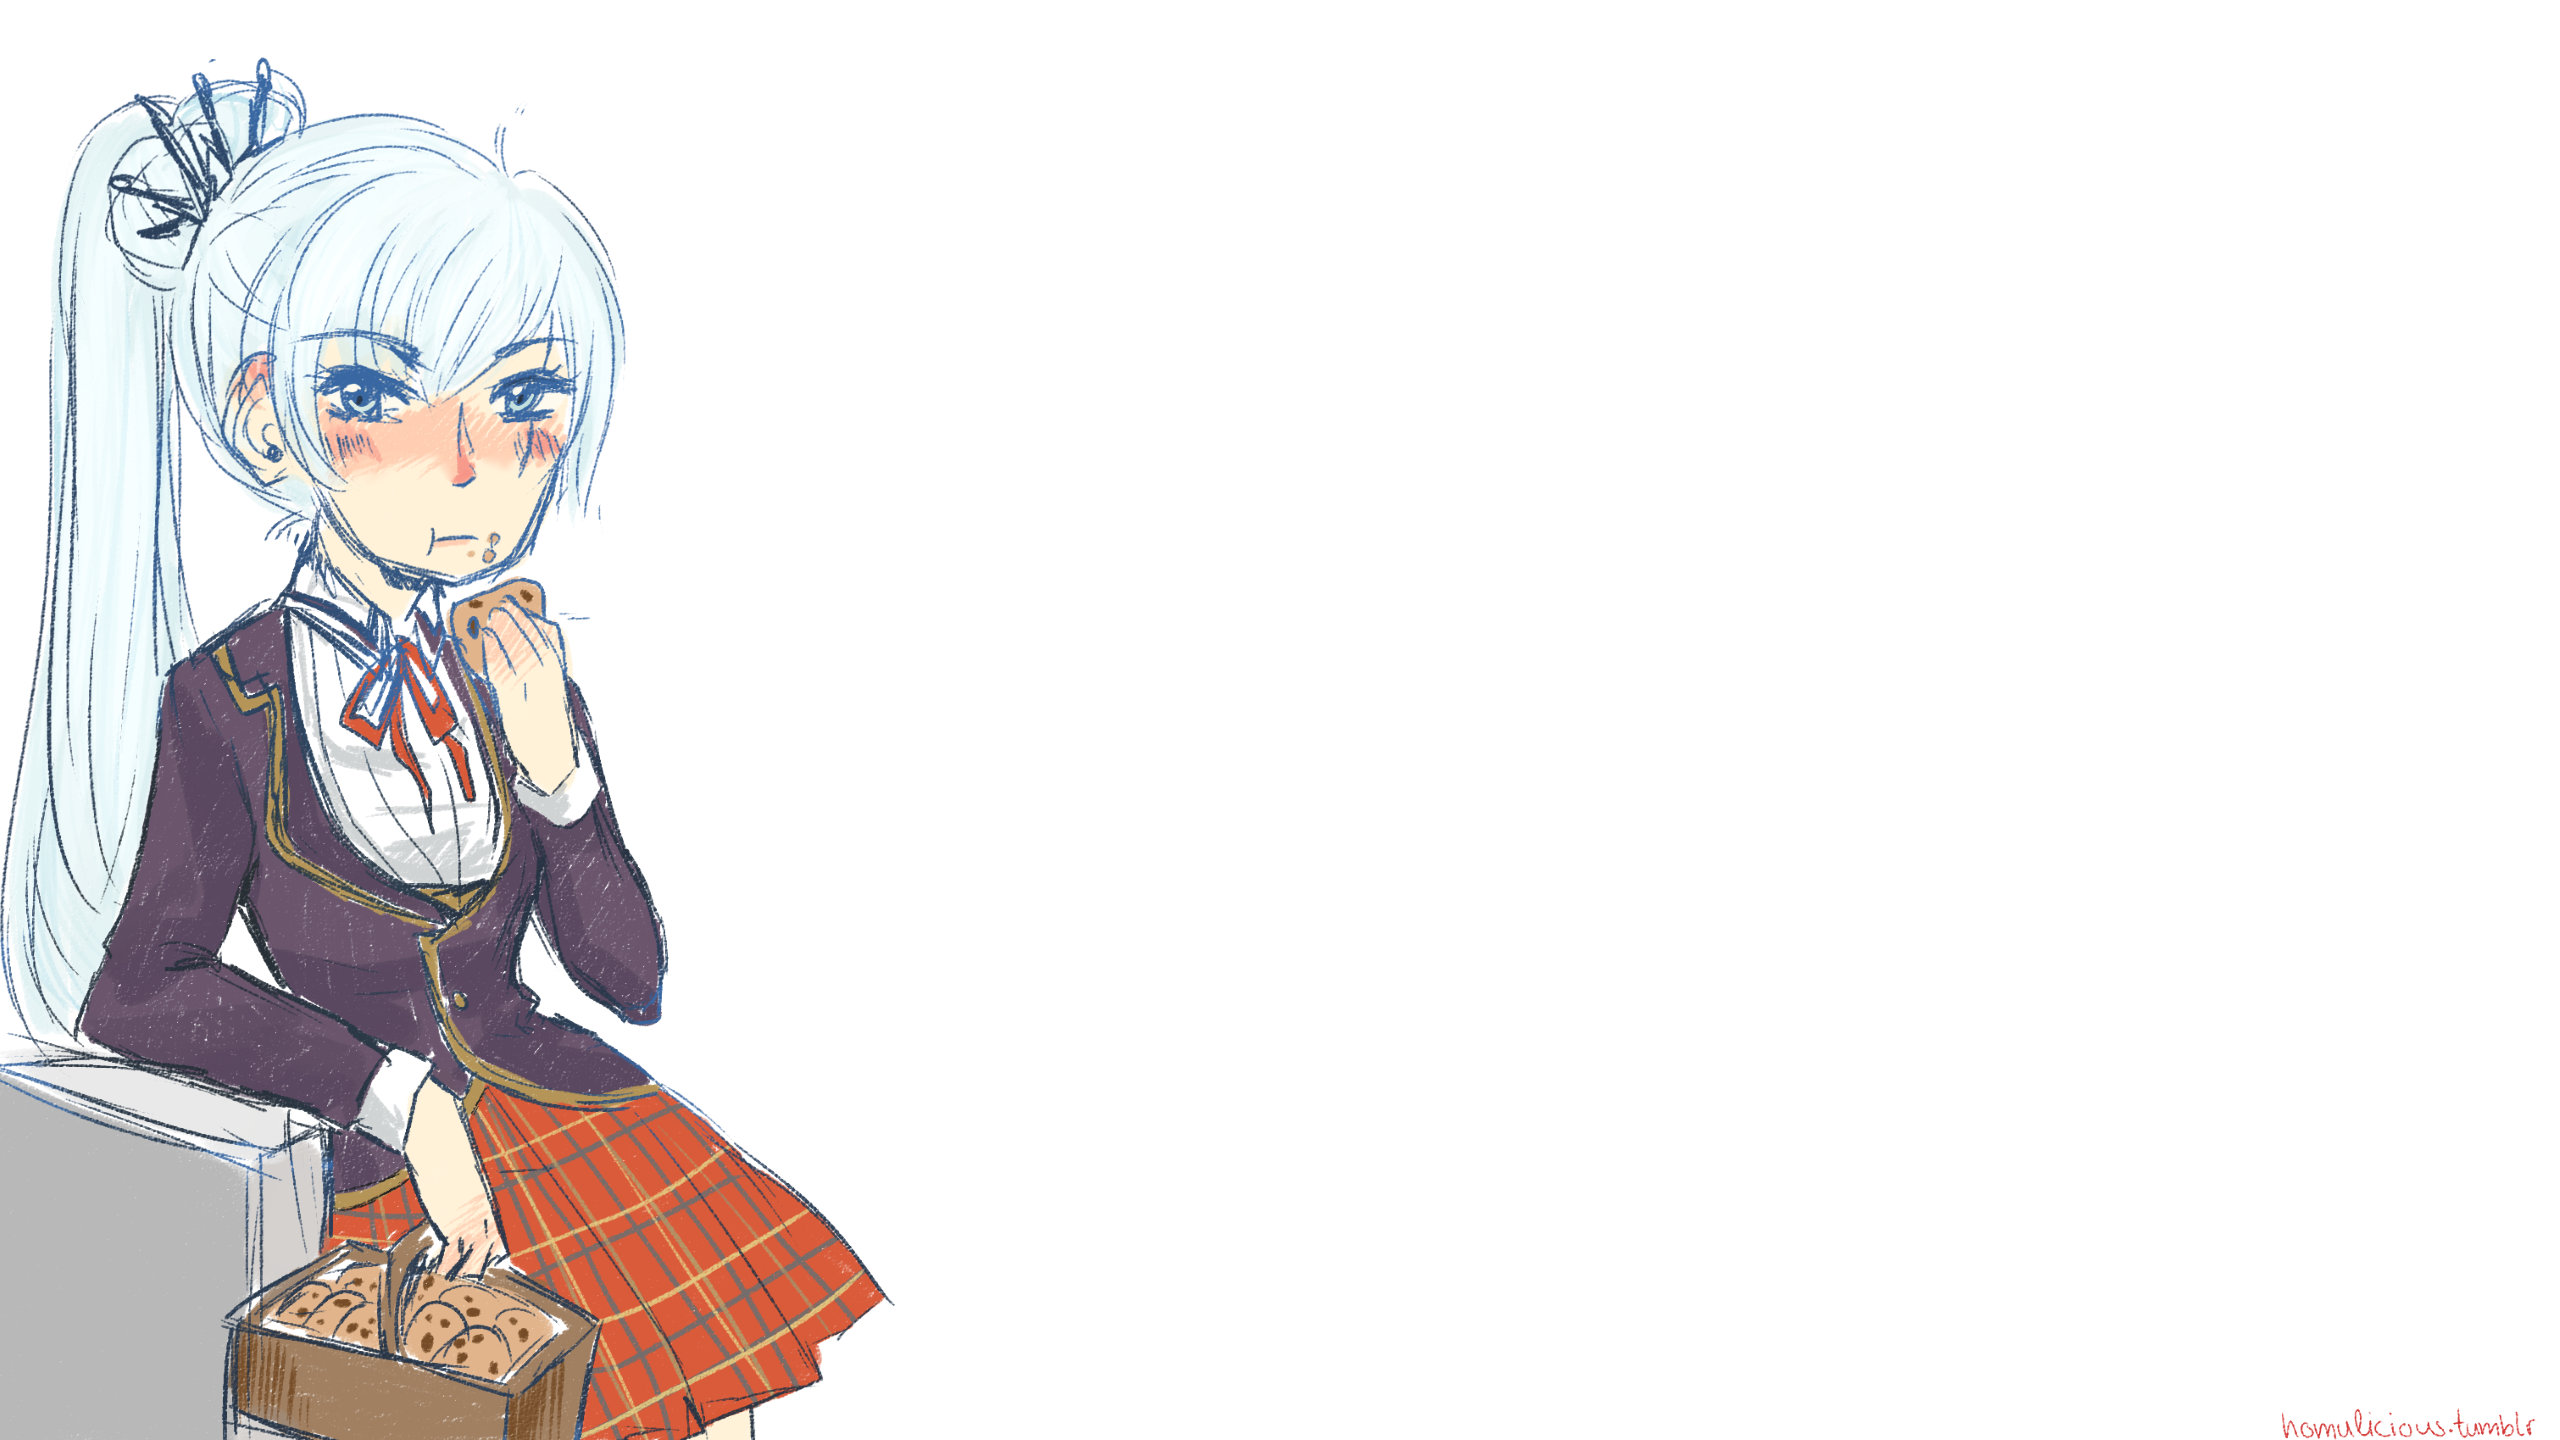 A 1440p Wallpaper Based On An Old Upload From Years Ago Rwby Know Your Meme